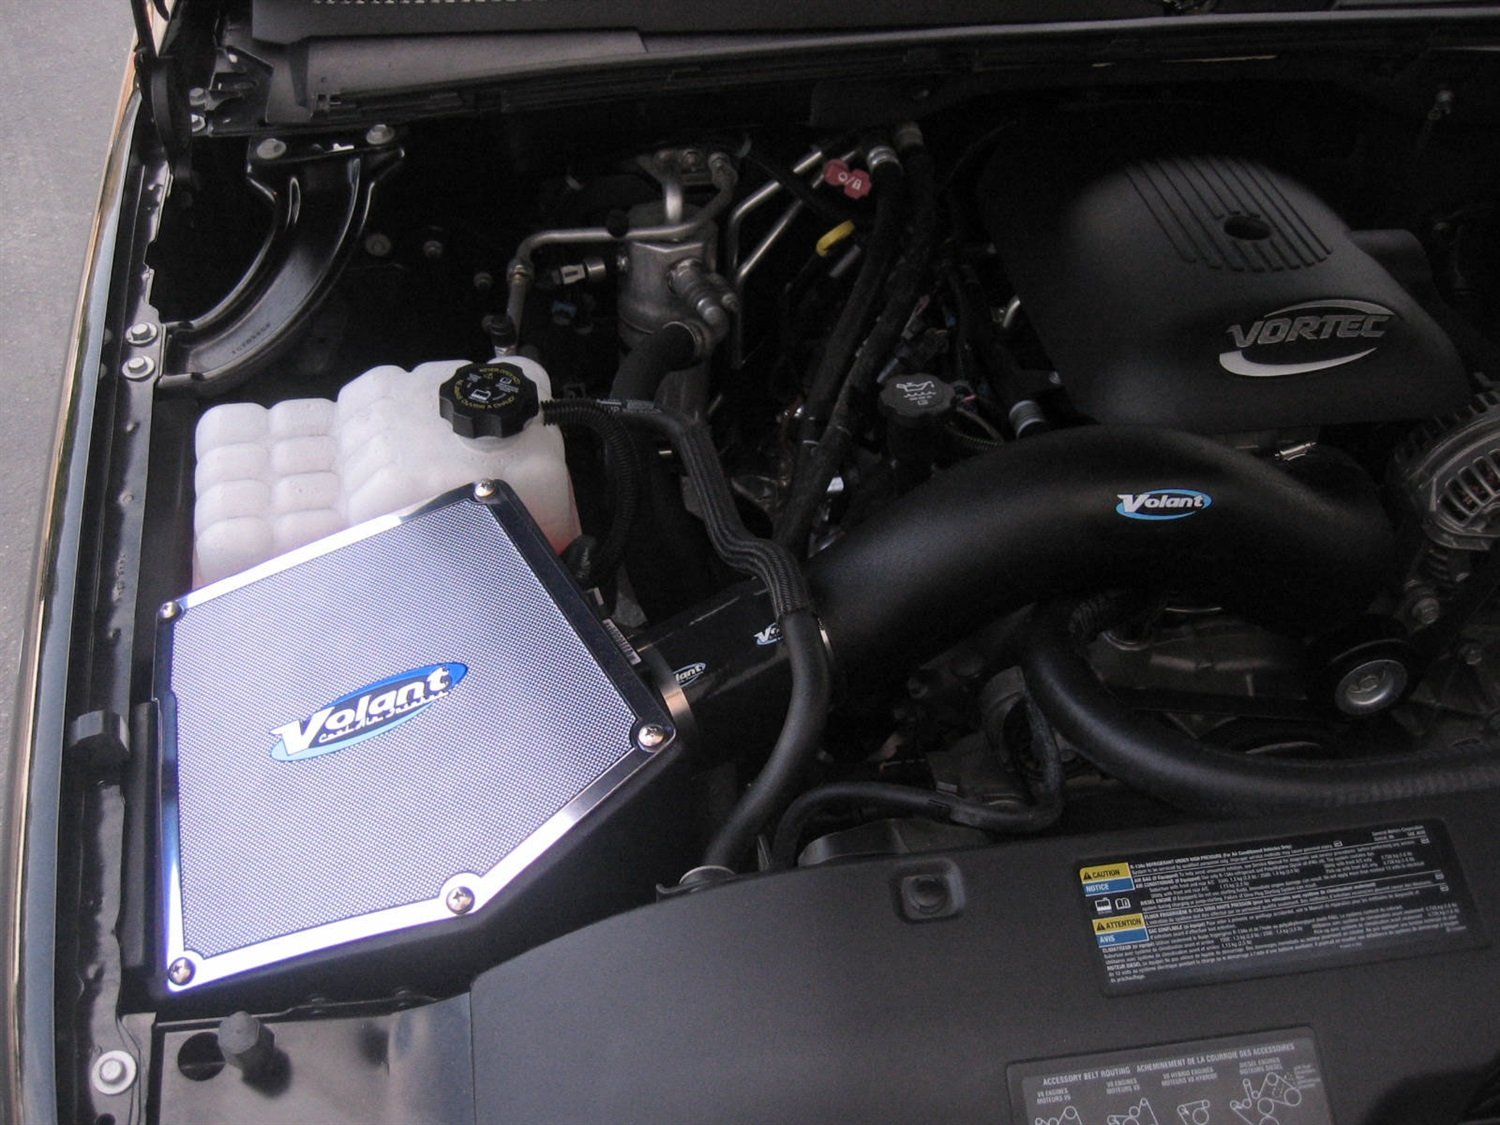 Volant 151536 PowerCore Cool Air Intake by Volant (Image #2)